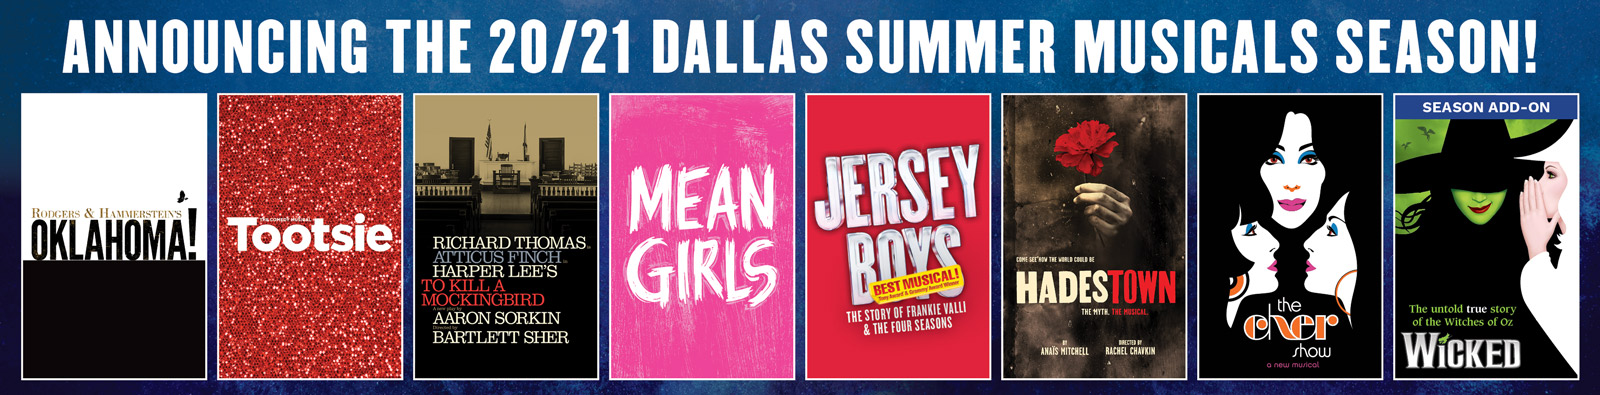 DSM Announcing the 20/21 Dallas Summer Musicals Season